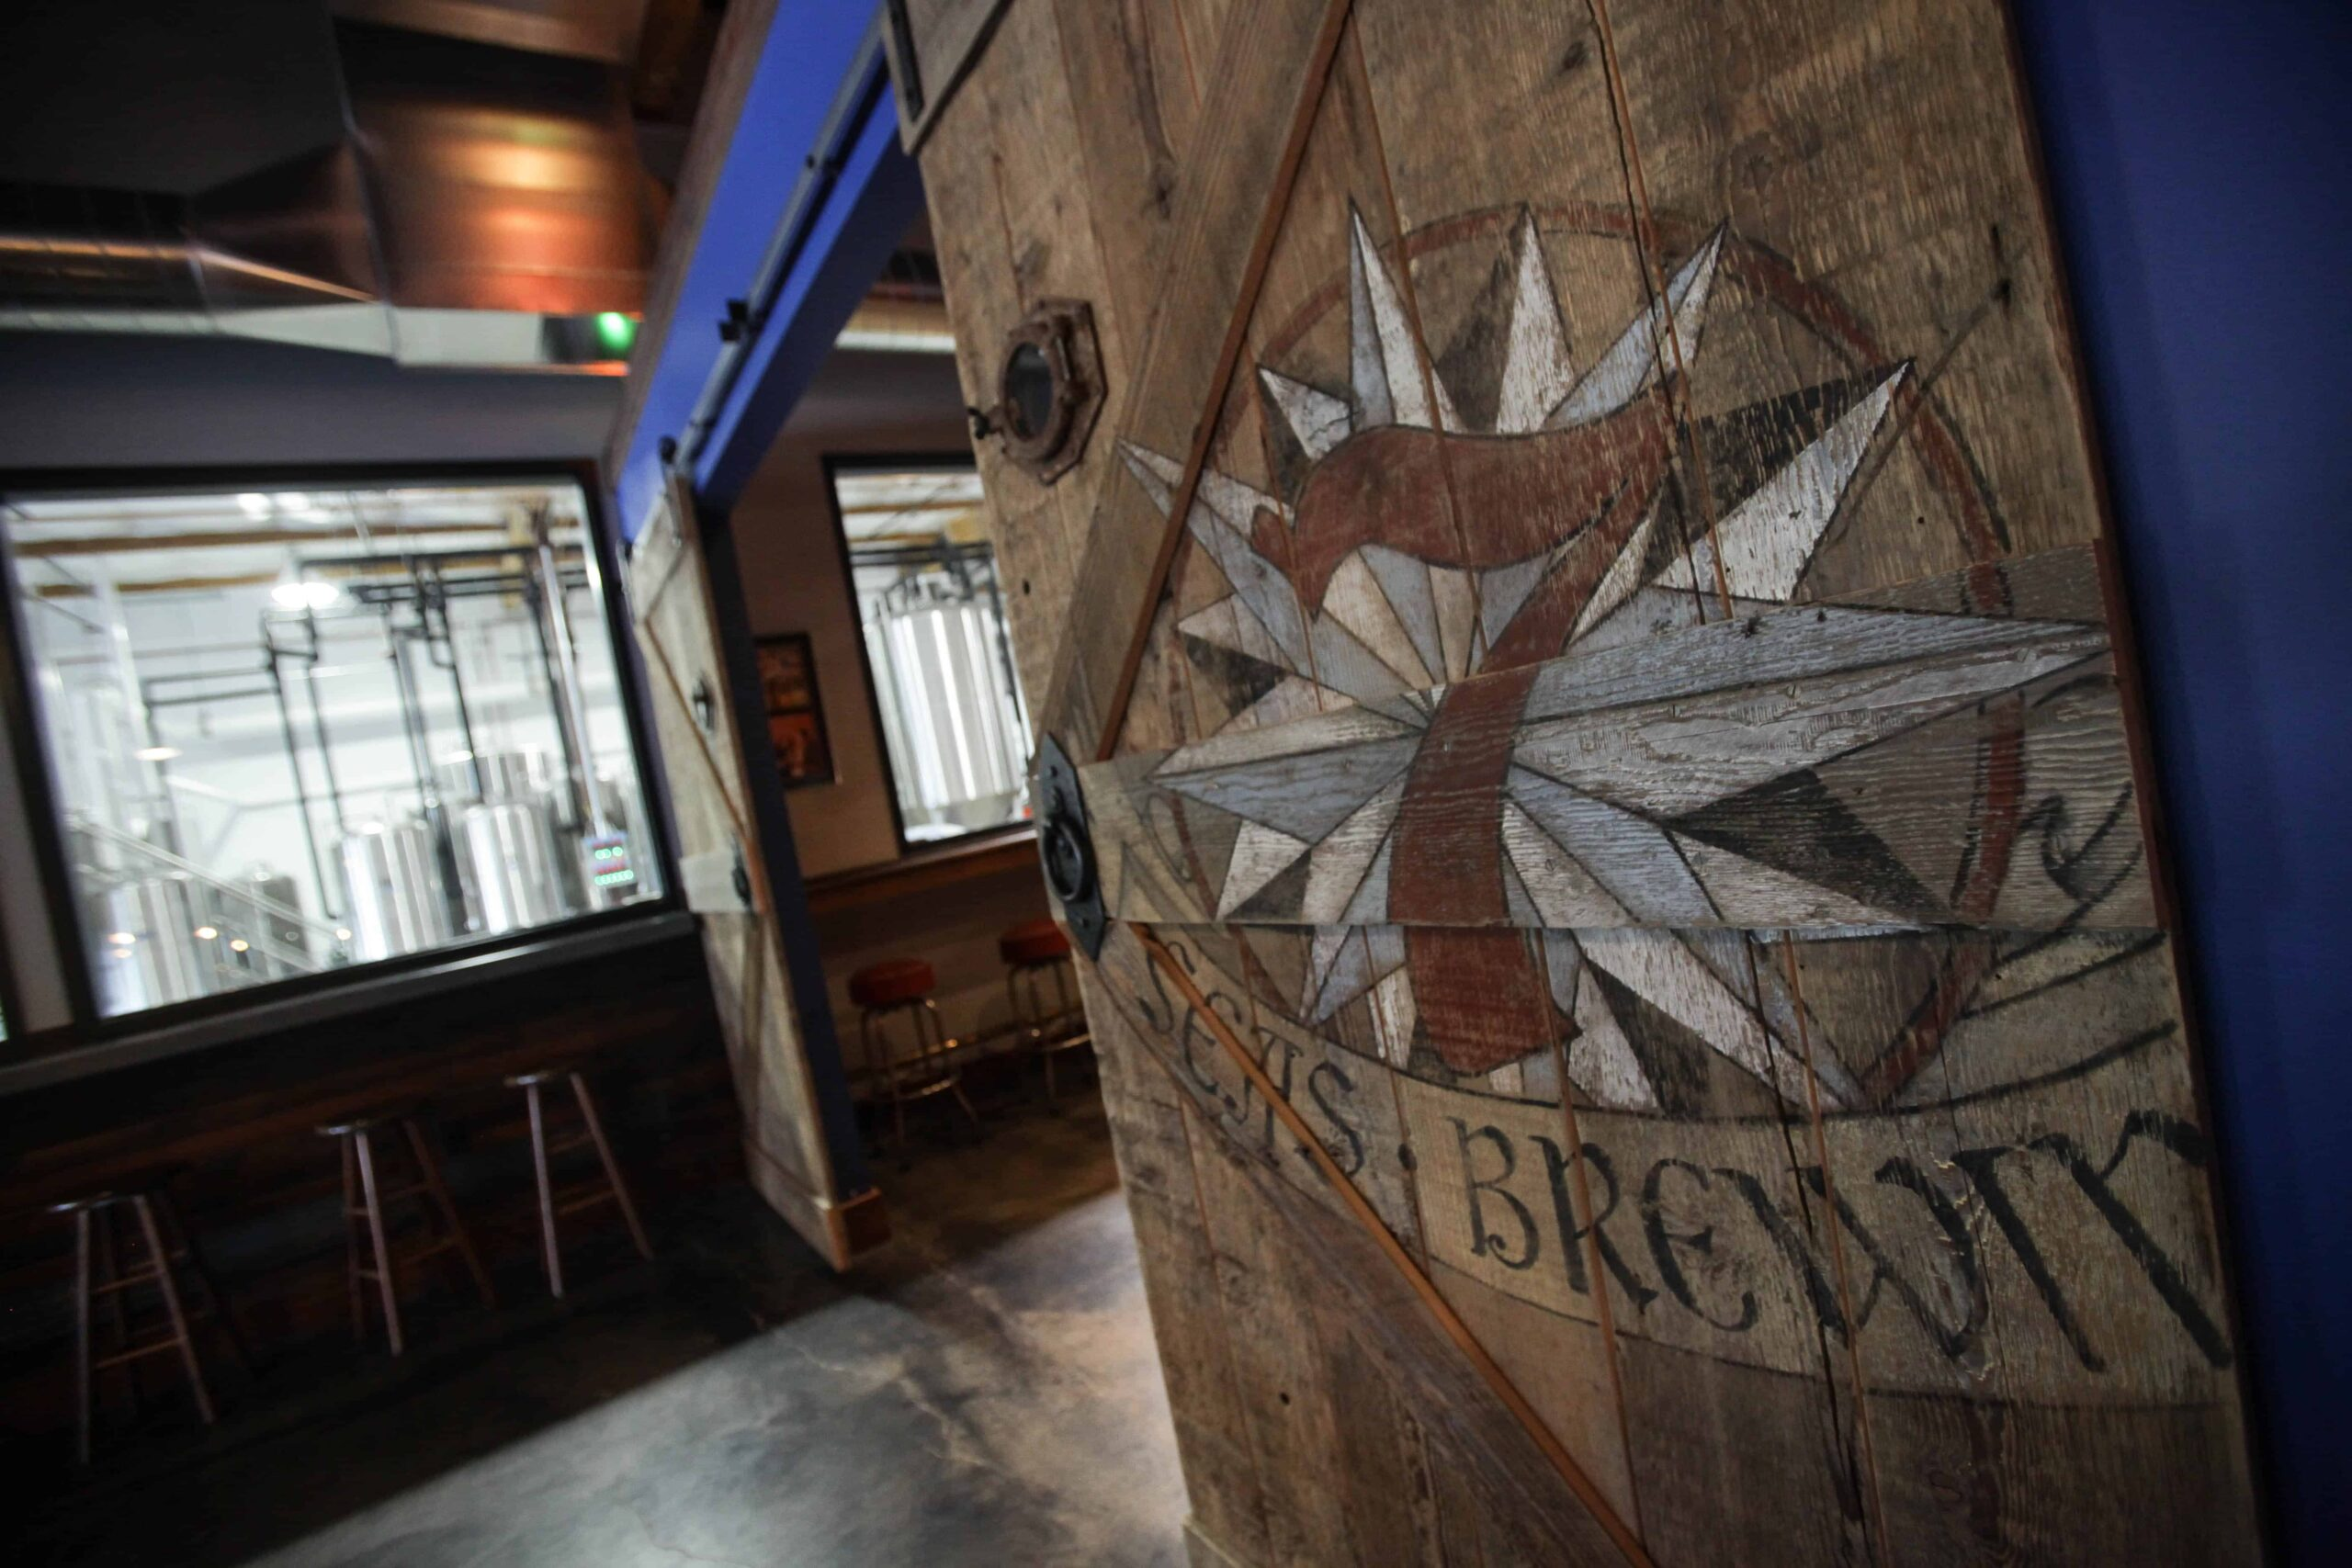 3. Sliding Barn Doors in the 7 Seas Brewing Taproom in Gig Harbor, WA